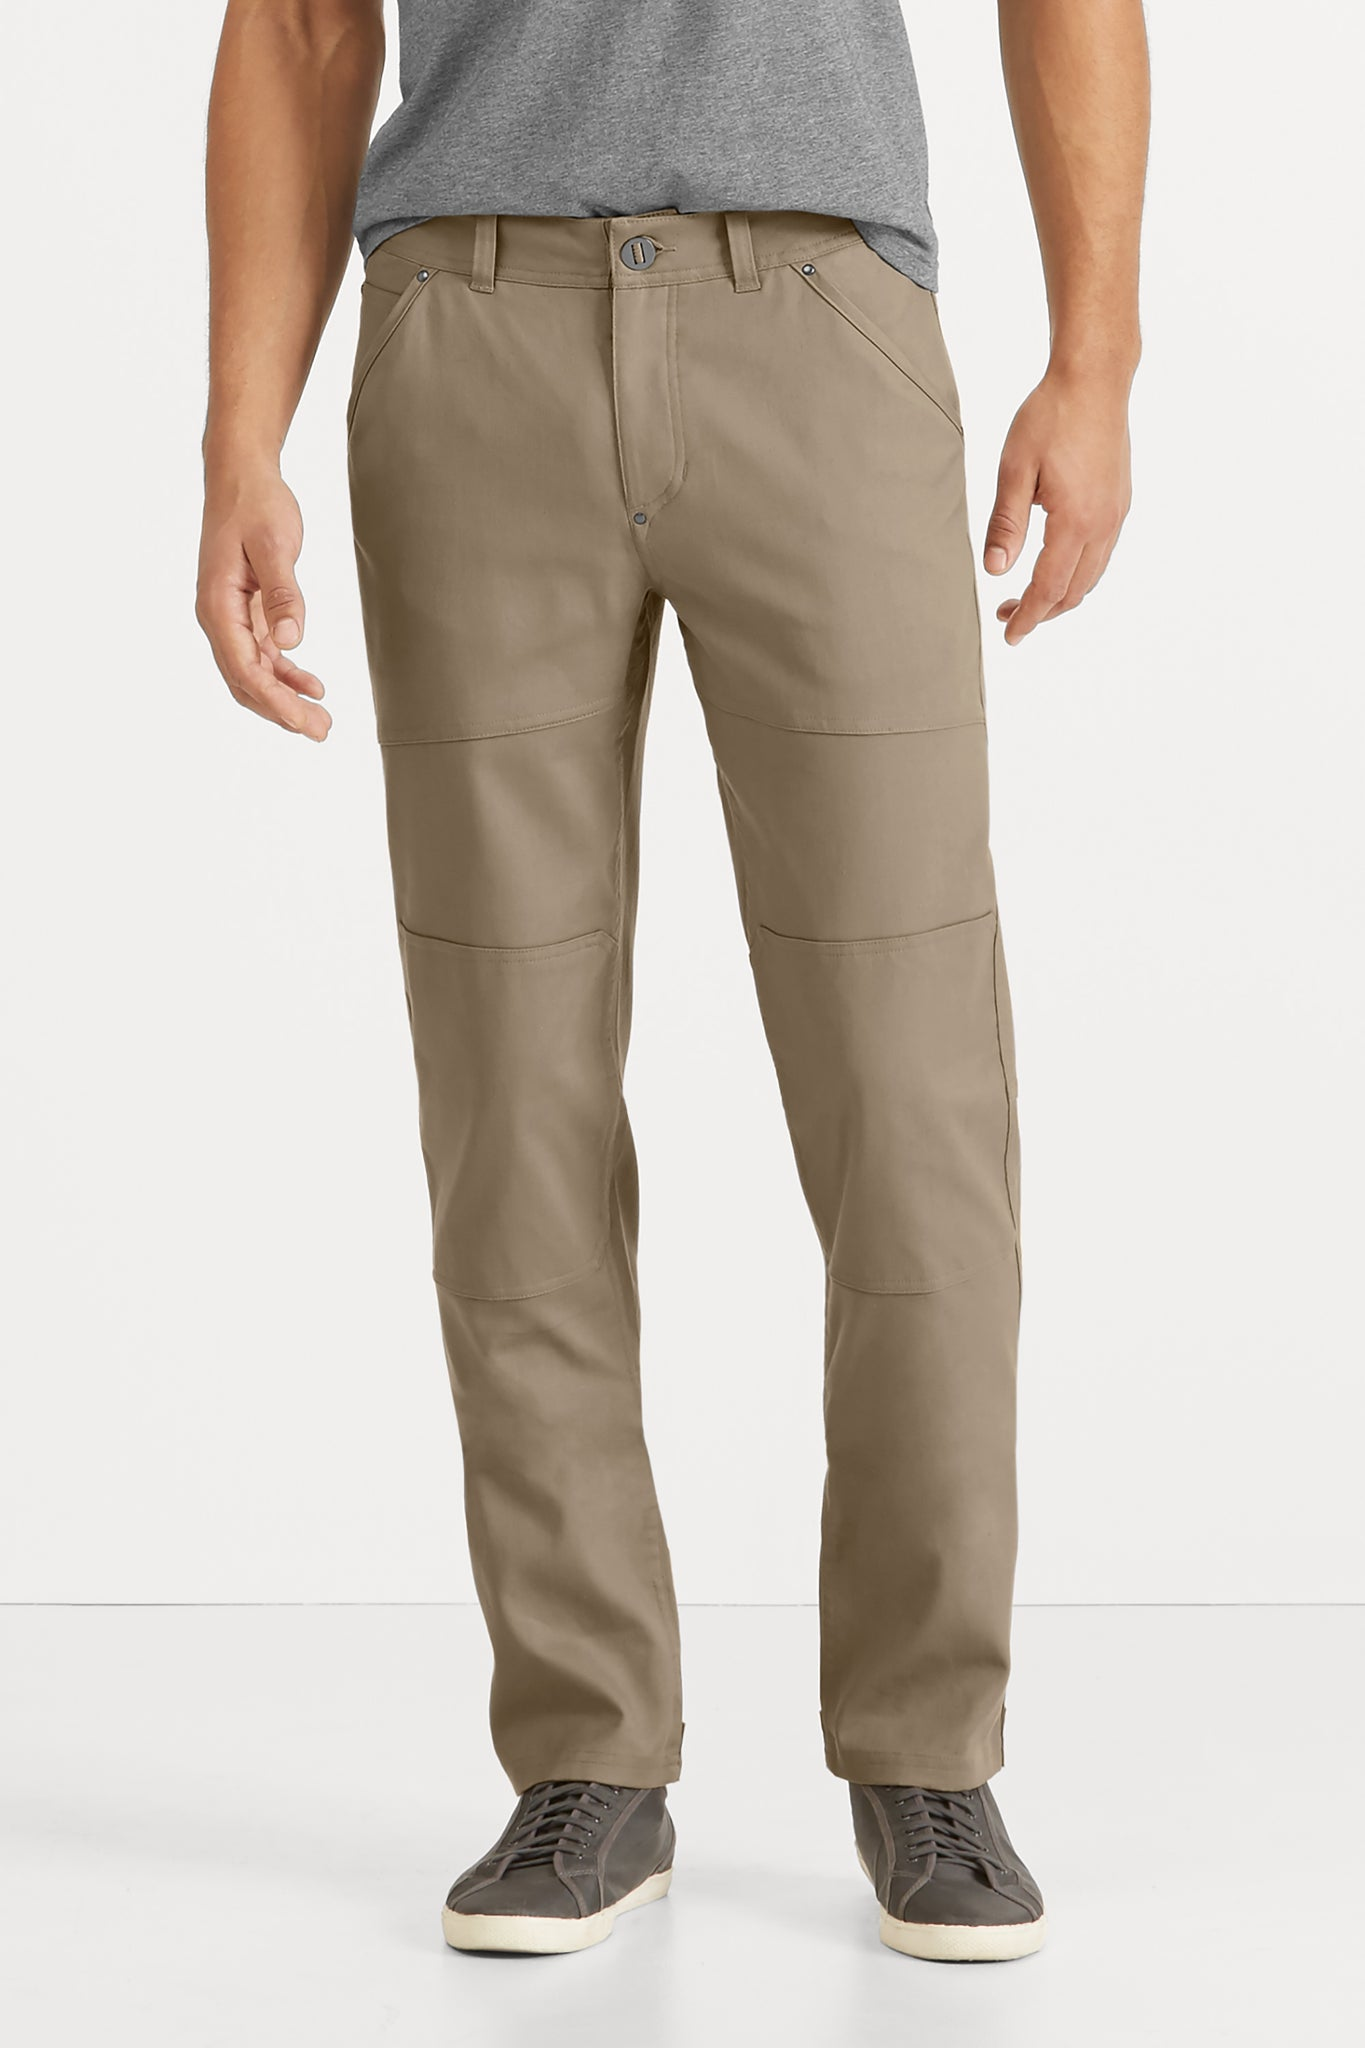 men's kush utility work pant - dark khaki